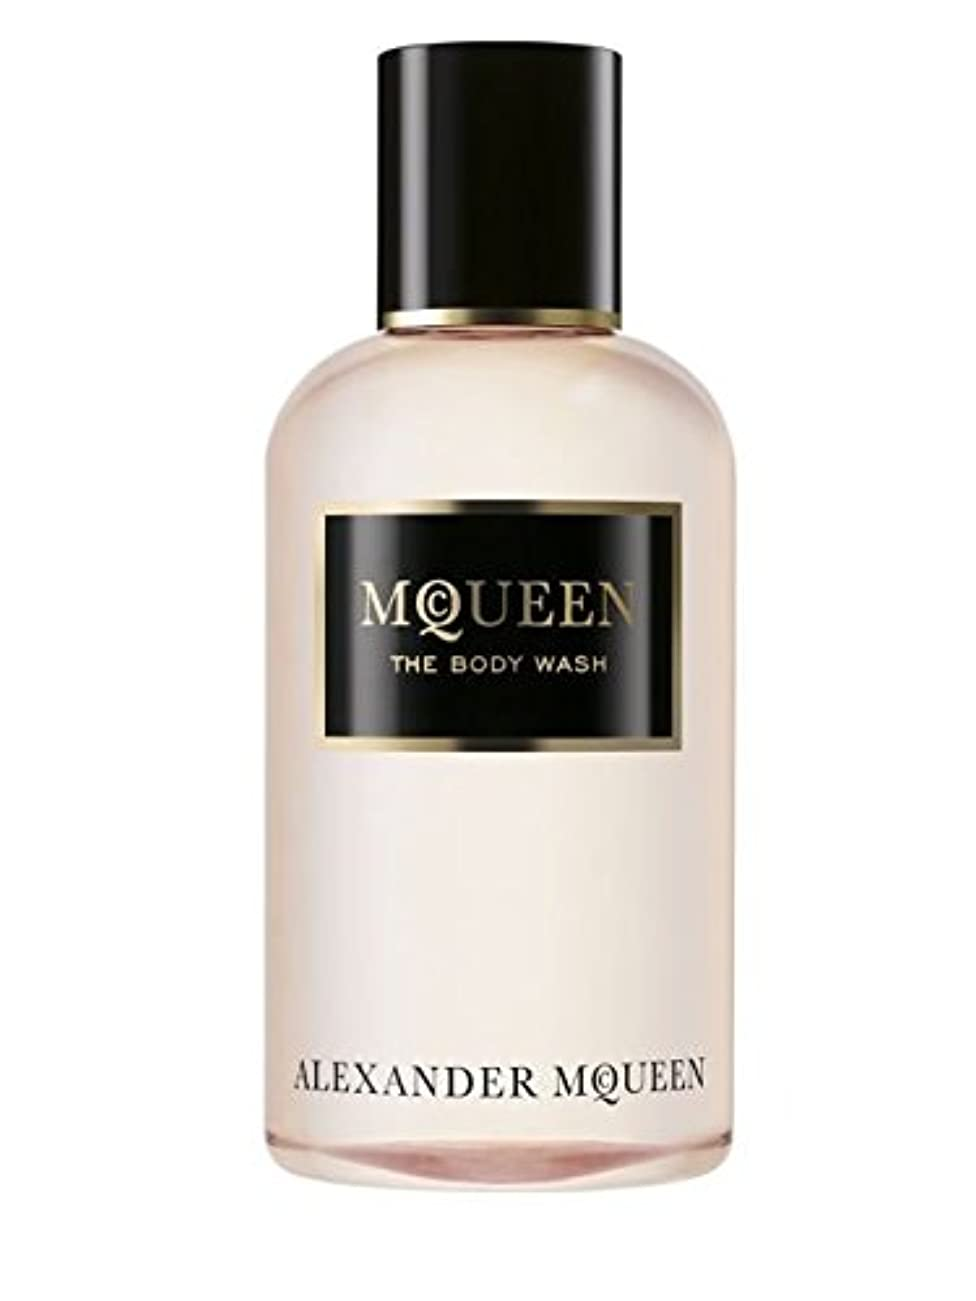 McQueen (マクイーン) 8.4 oz (250ml) Body Wash by Alexander McQueen for Women